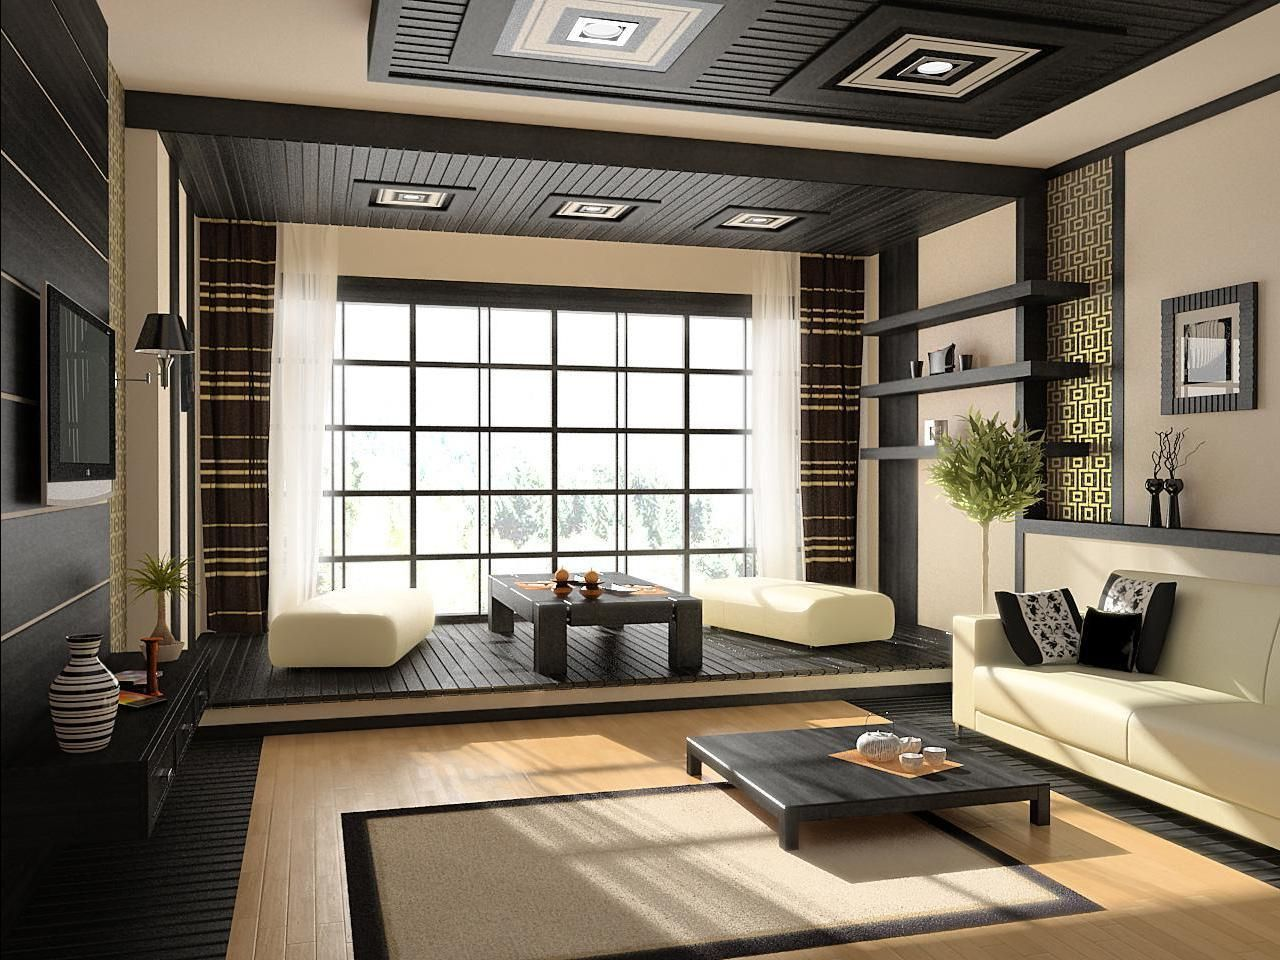 Contemporary Design Living Room Interesting Create A Zen Interior With Japanese Style Influence See More At Design Inspiration